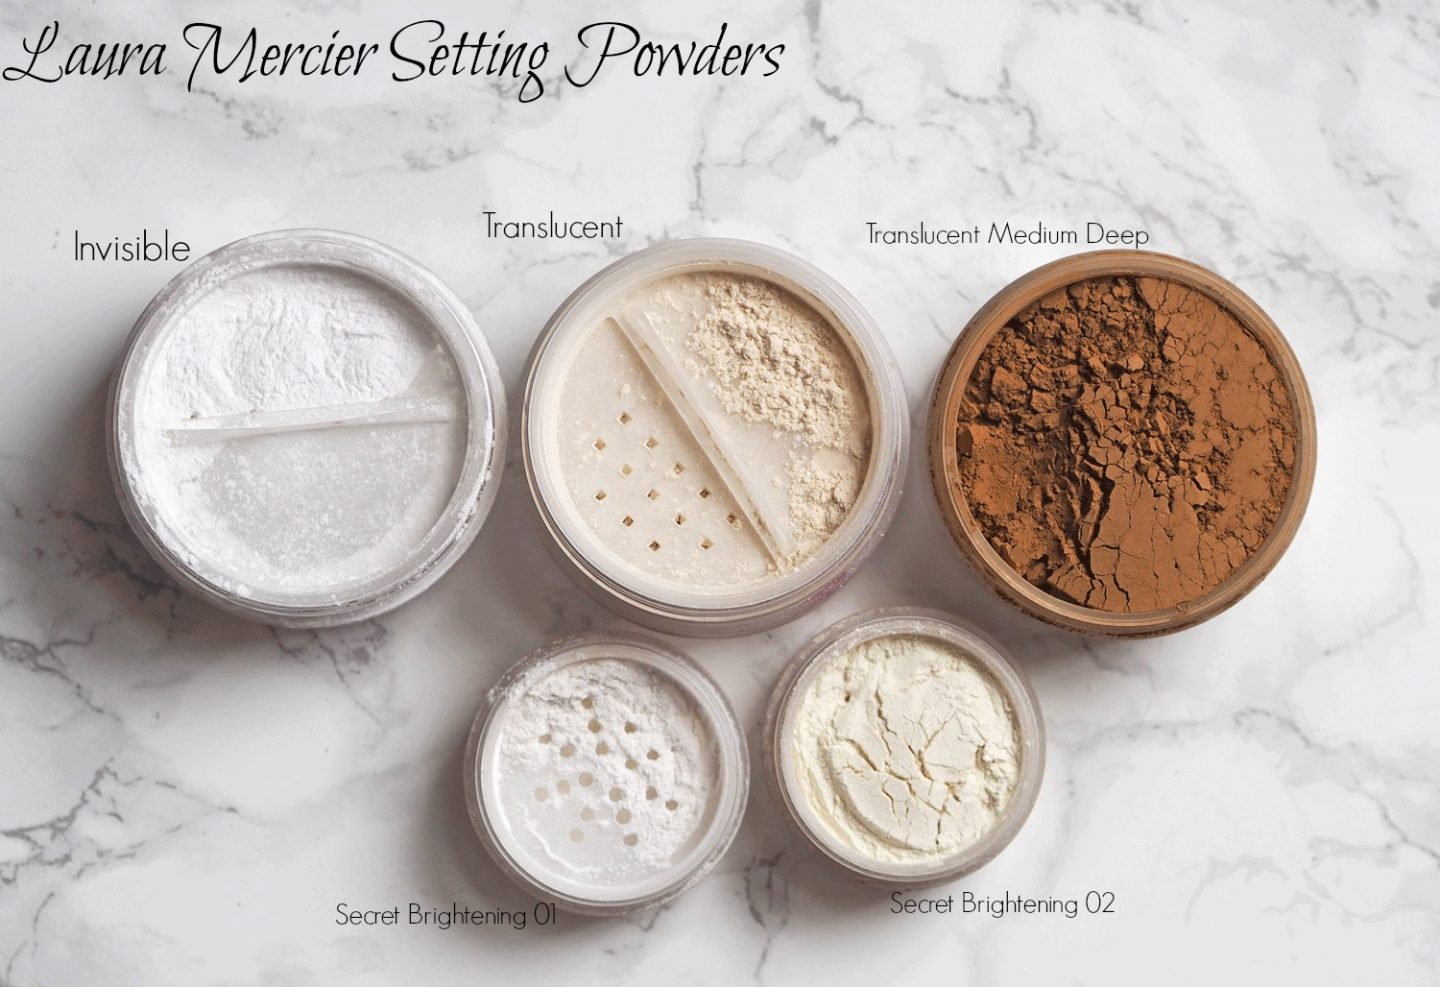 laura mercier setting powders